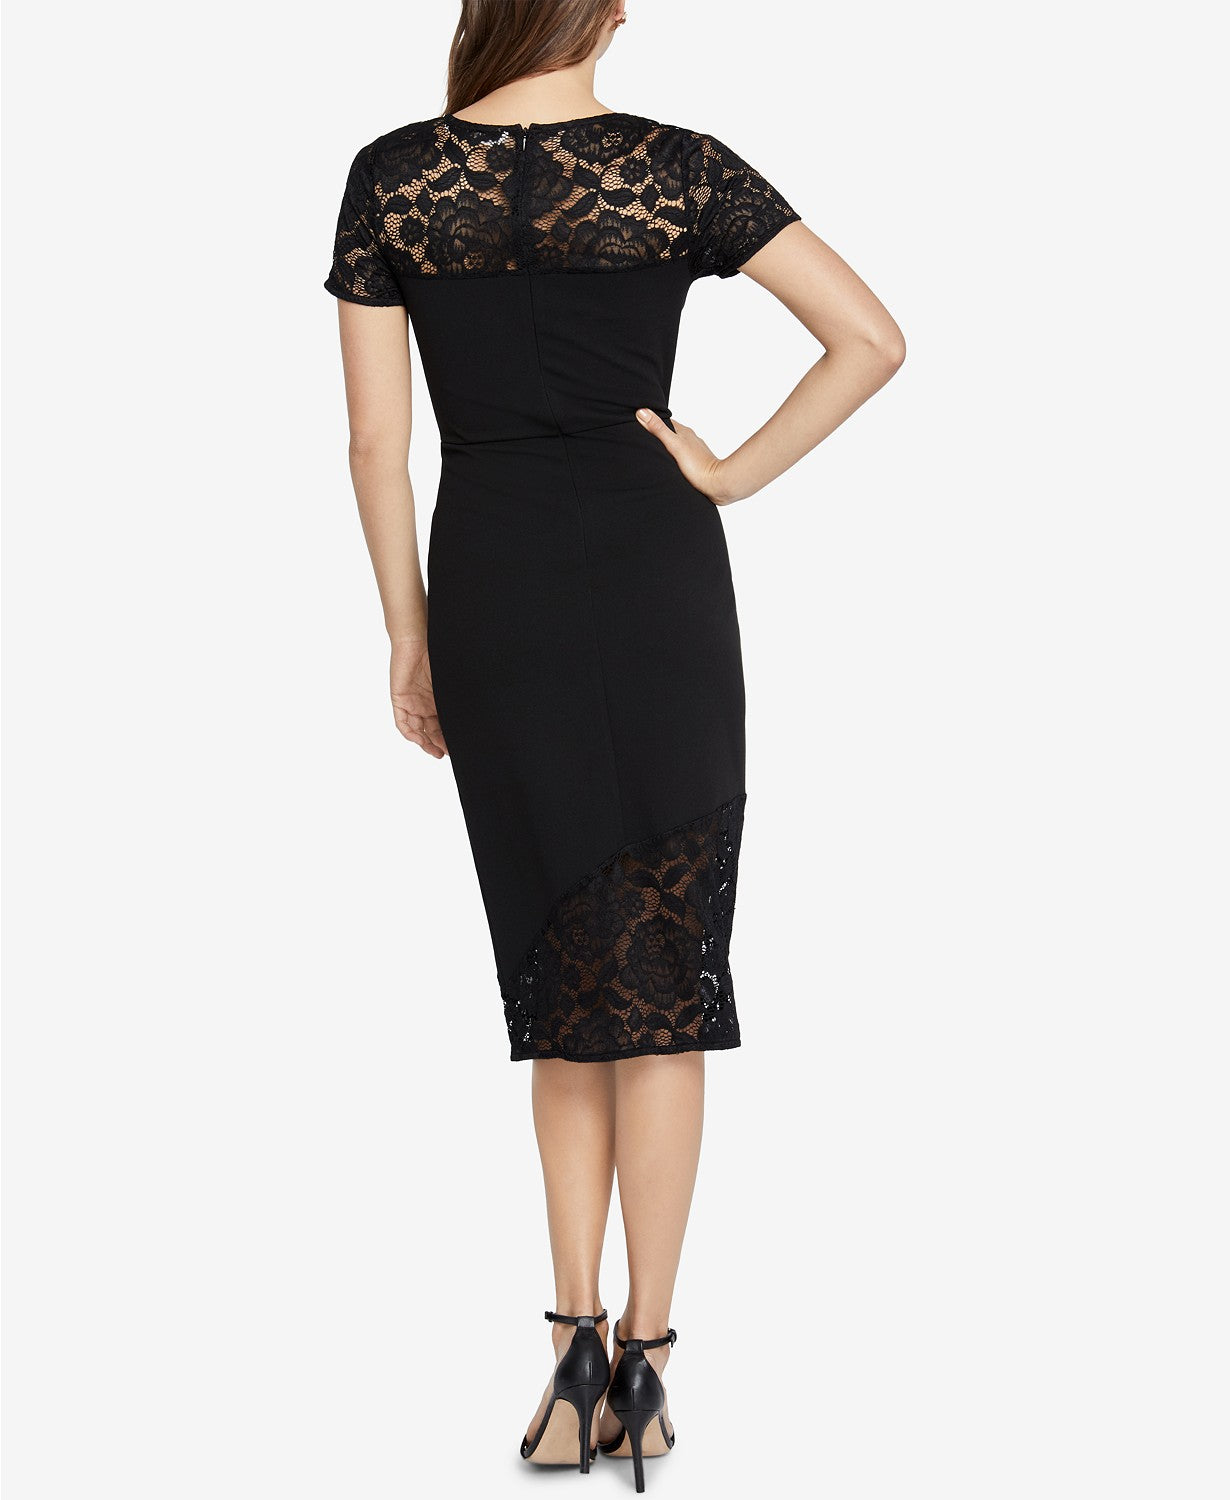 RACHEL Rachel Roy Women's Jamie Lace-Trim Dress Black XXL